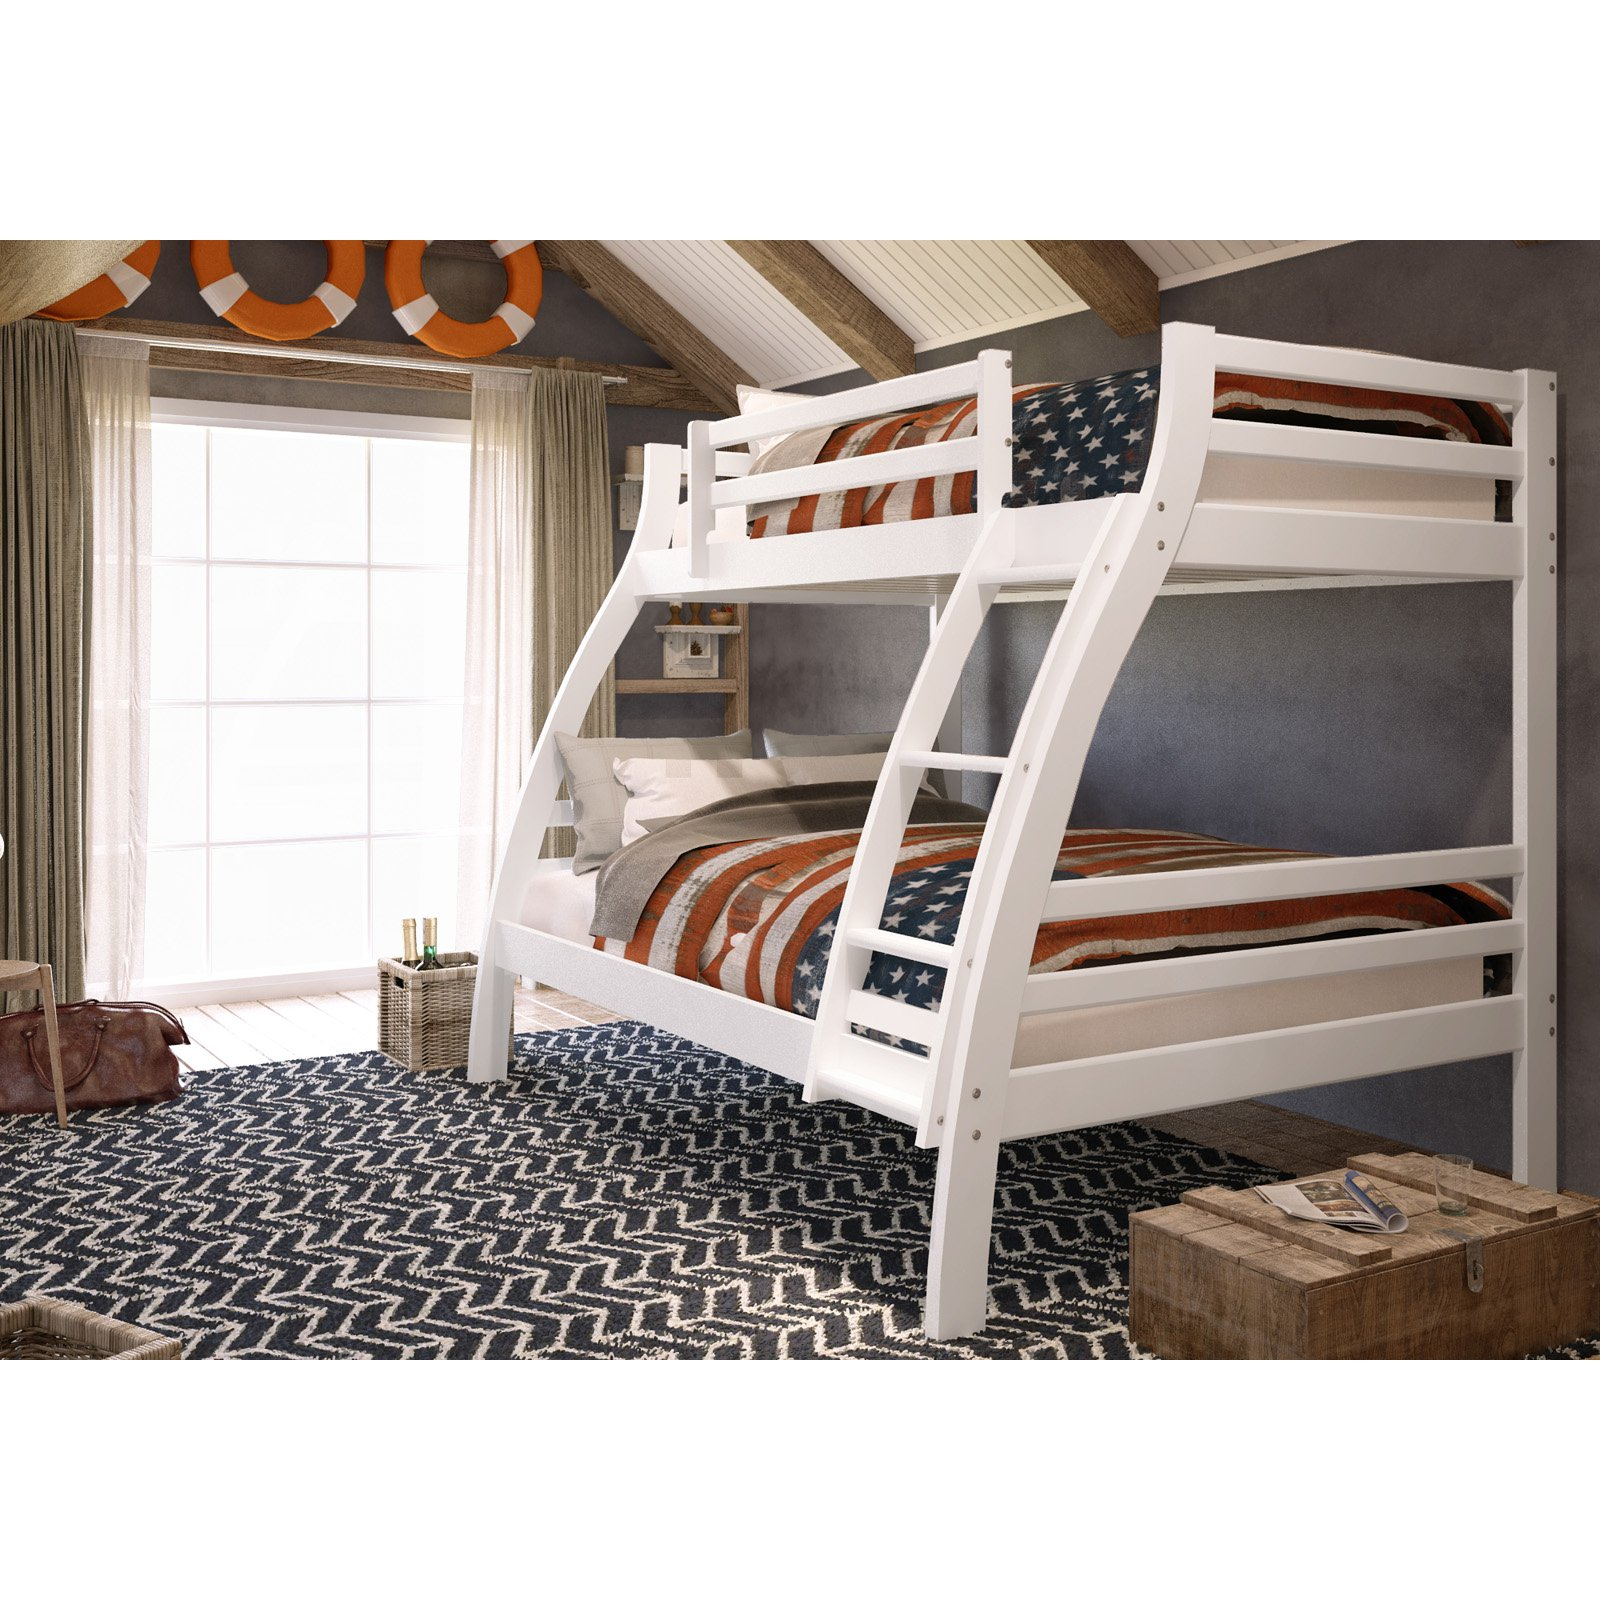 Woodcrest Pine Ridge Twin Over Full S Bunk Bed Walmart Com